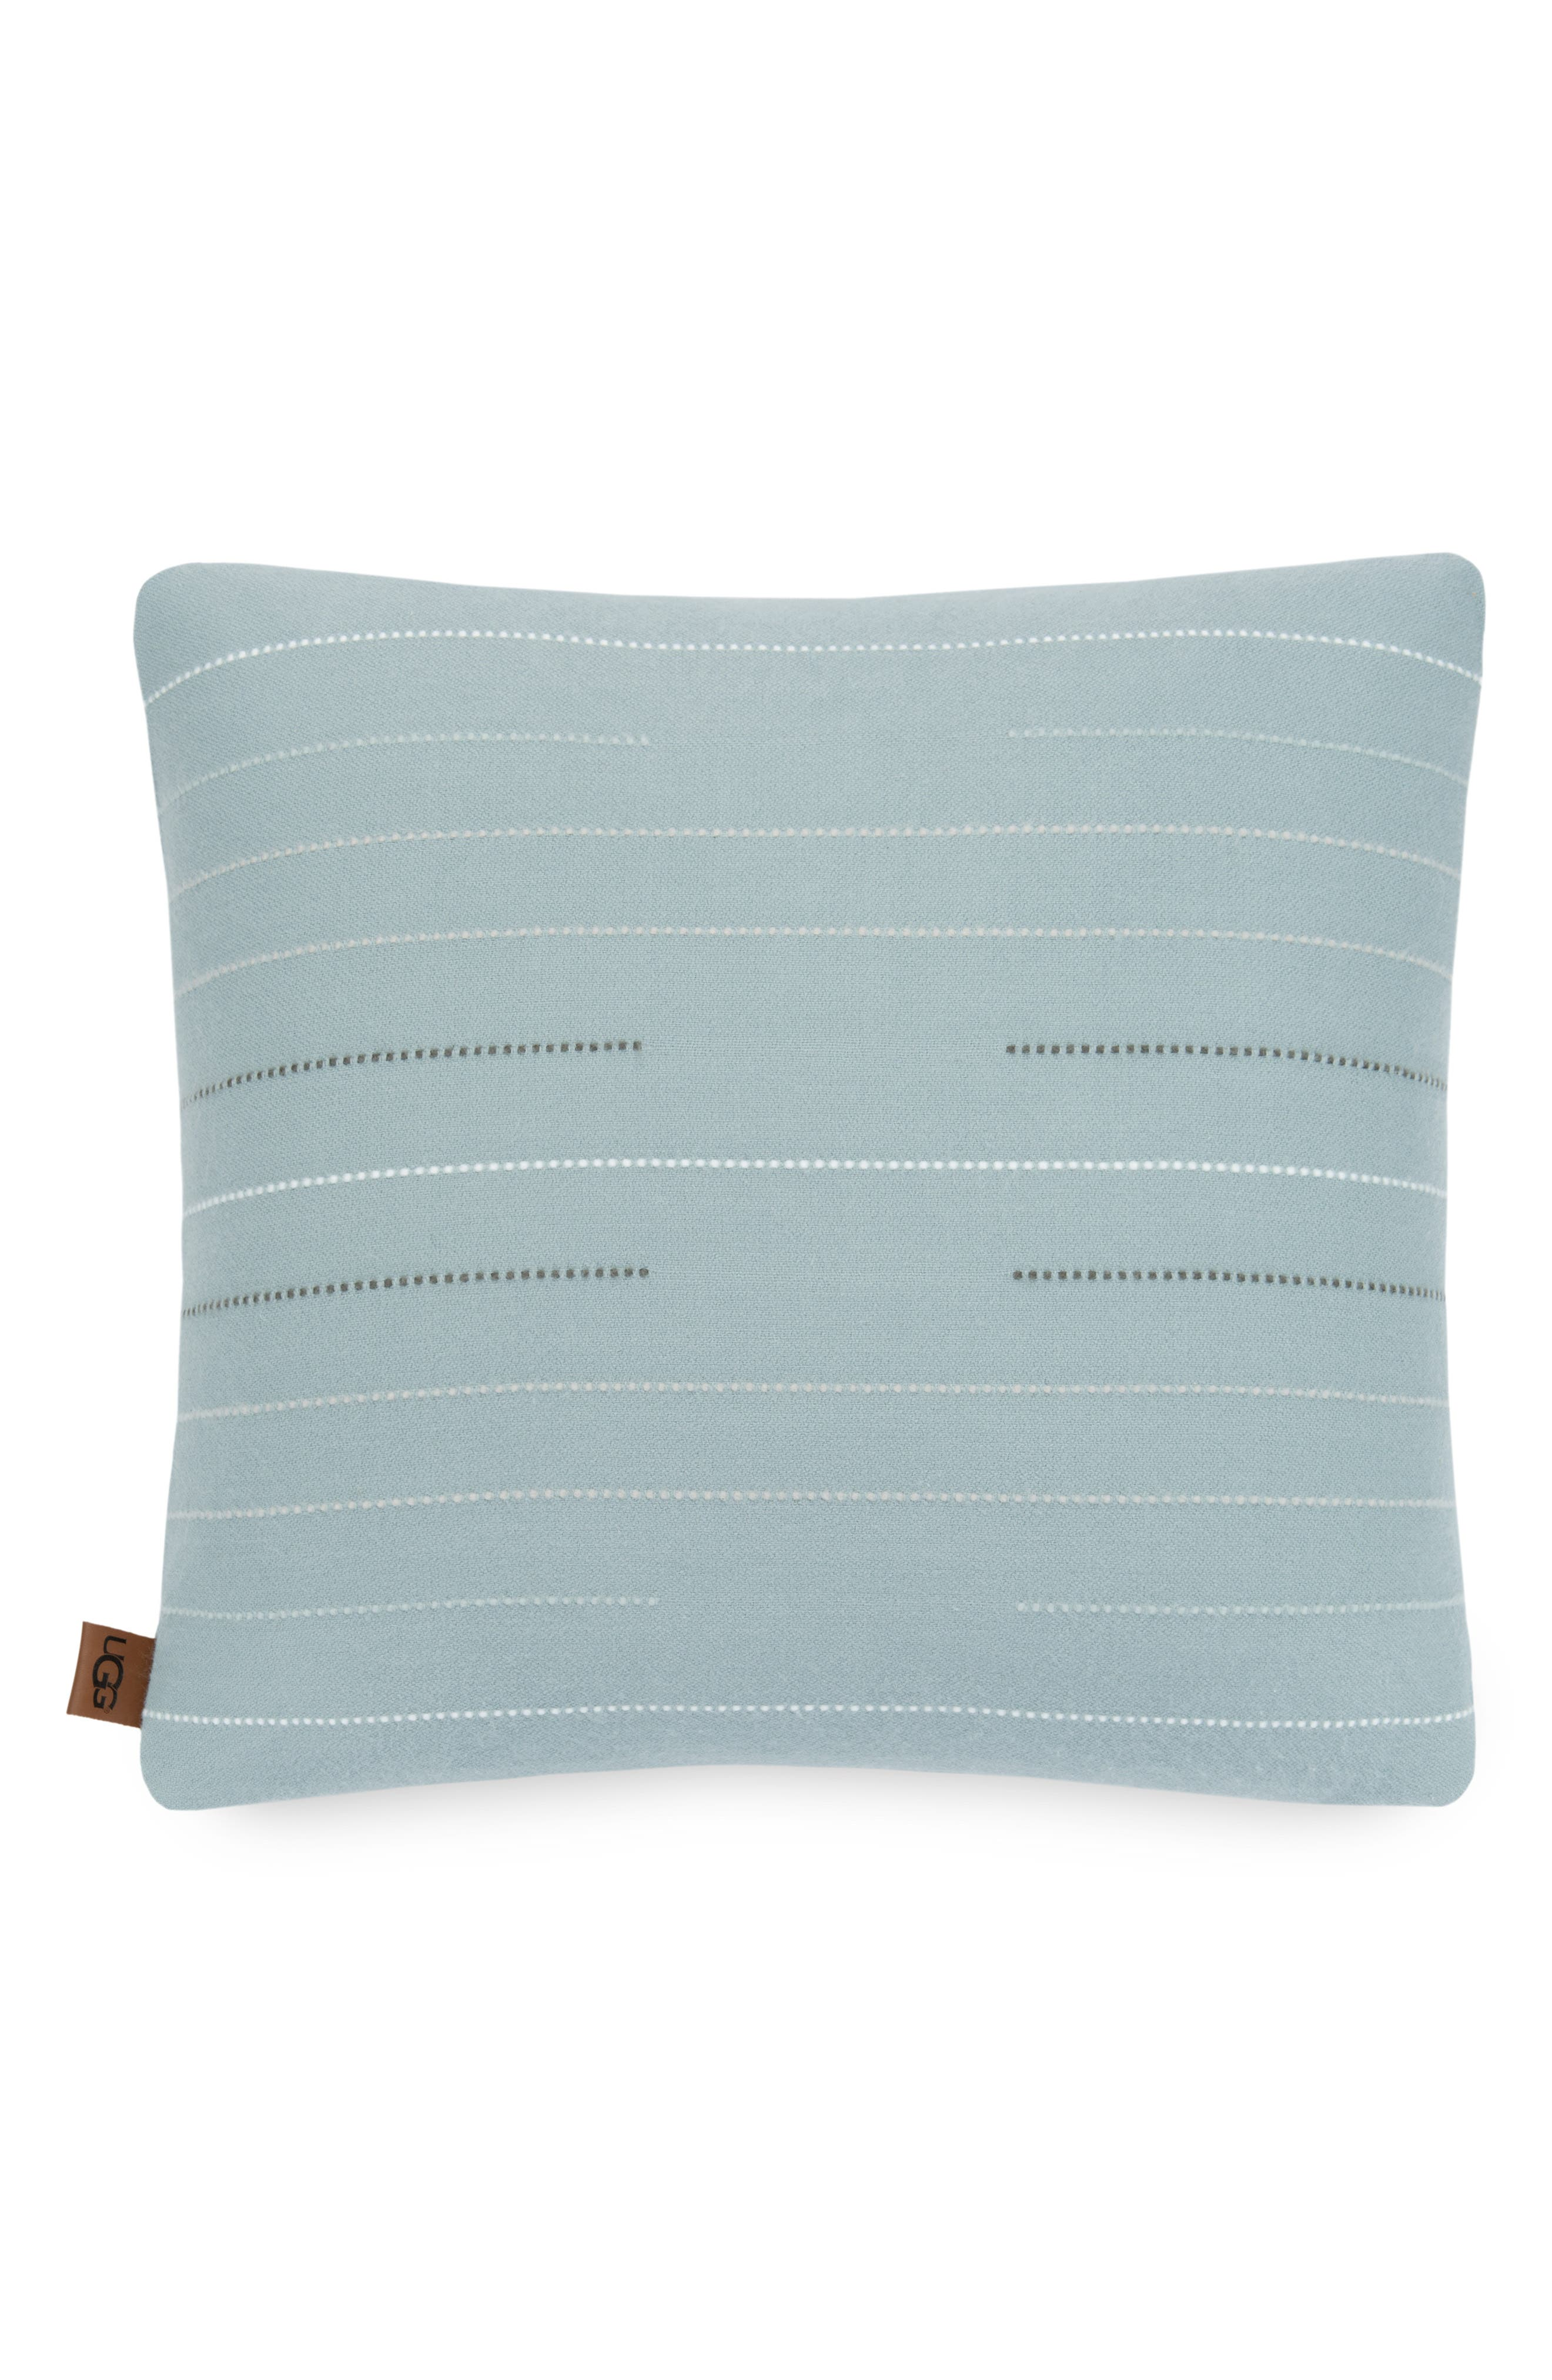 UGG<SUP>®</SUP>, Emory Stitch Stripe Accent Pillow, Main thumbnail 1, color, SLATE MULTI